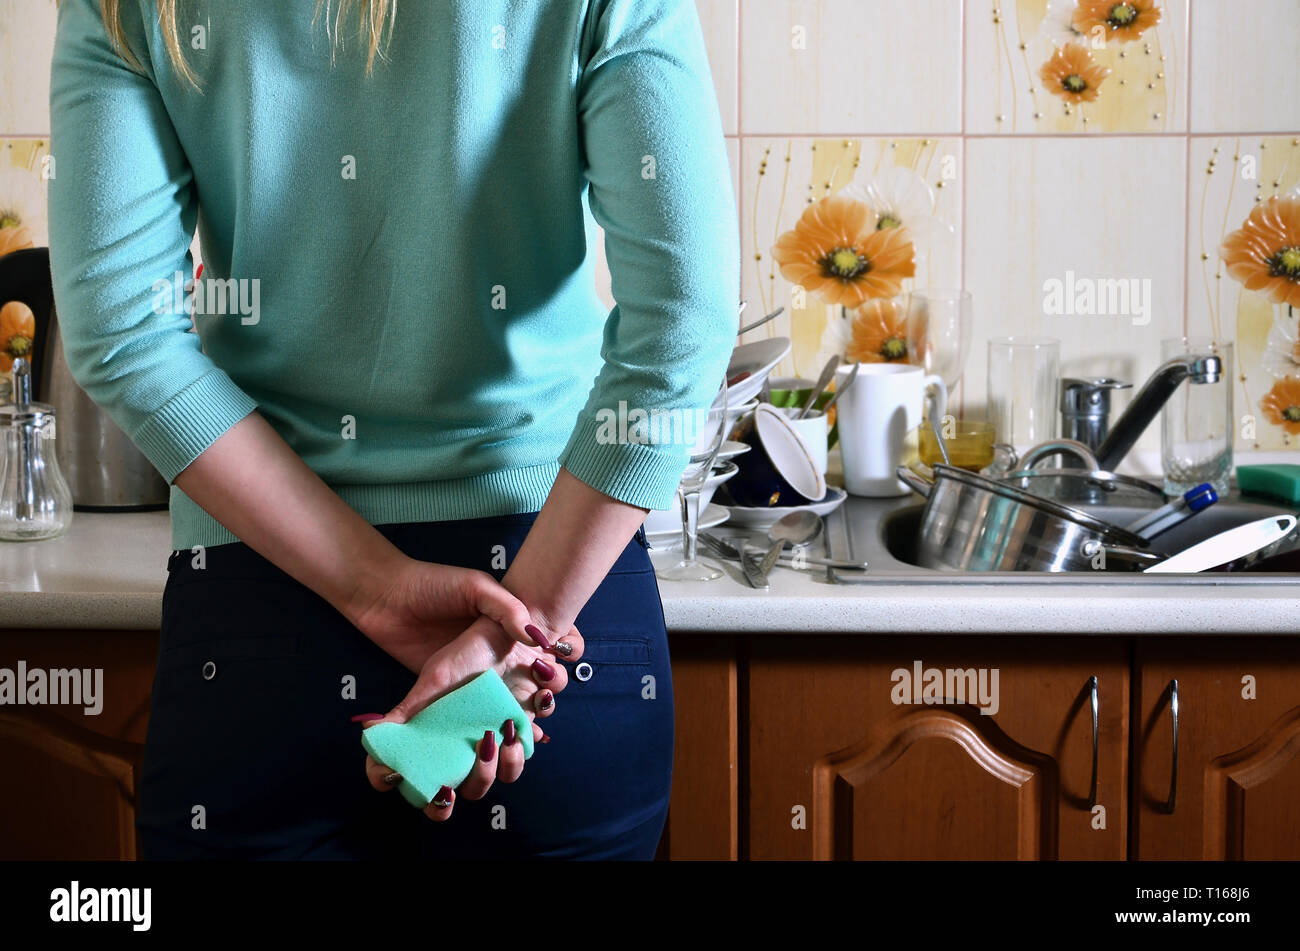 Fragment of the female body at the kitchen counter, filled with a lot of unwashed dishes. The girl is tired of coping with the daily duty of washing d - Stock Image